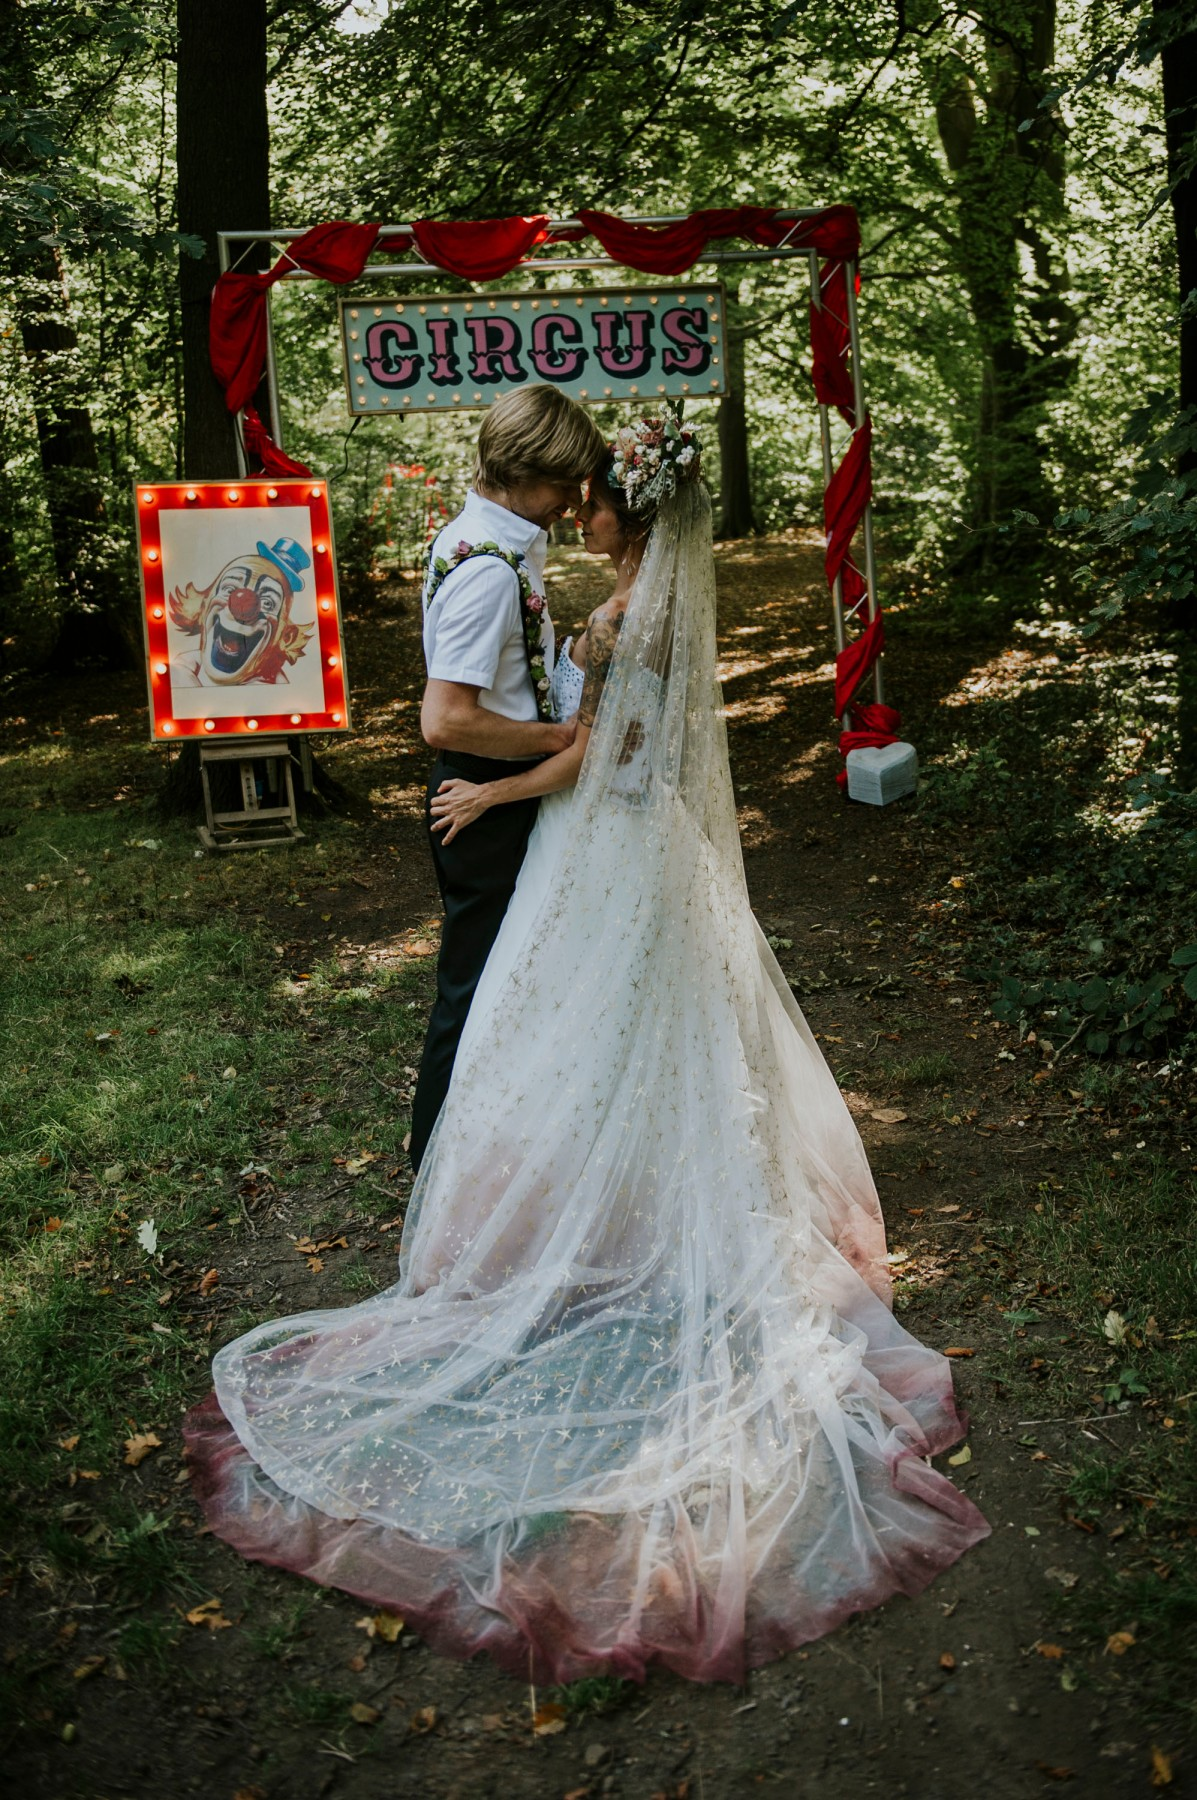 circus wedding - ombre wedding dress - unique bridal wear, circus wedding props